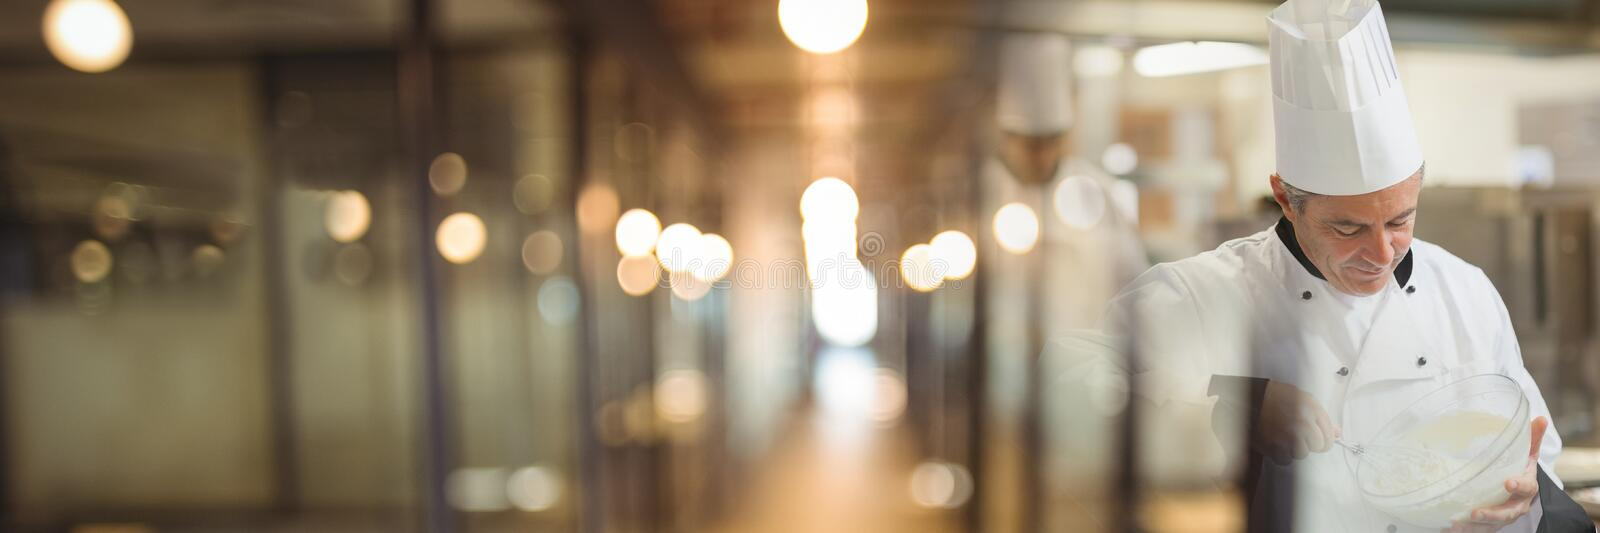 Chef working in kitchen with beautiful blurry lights transition stock photo